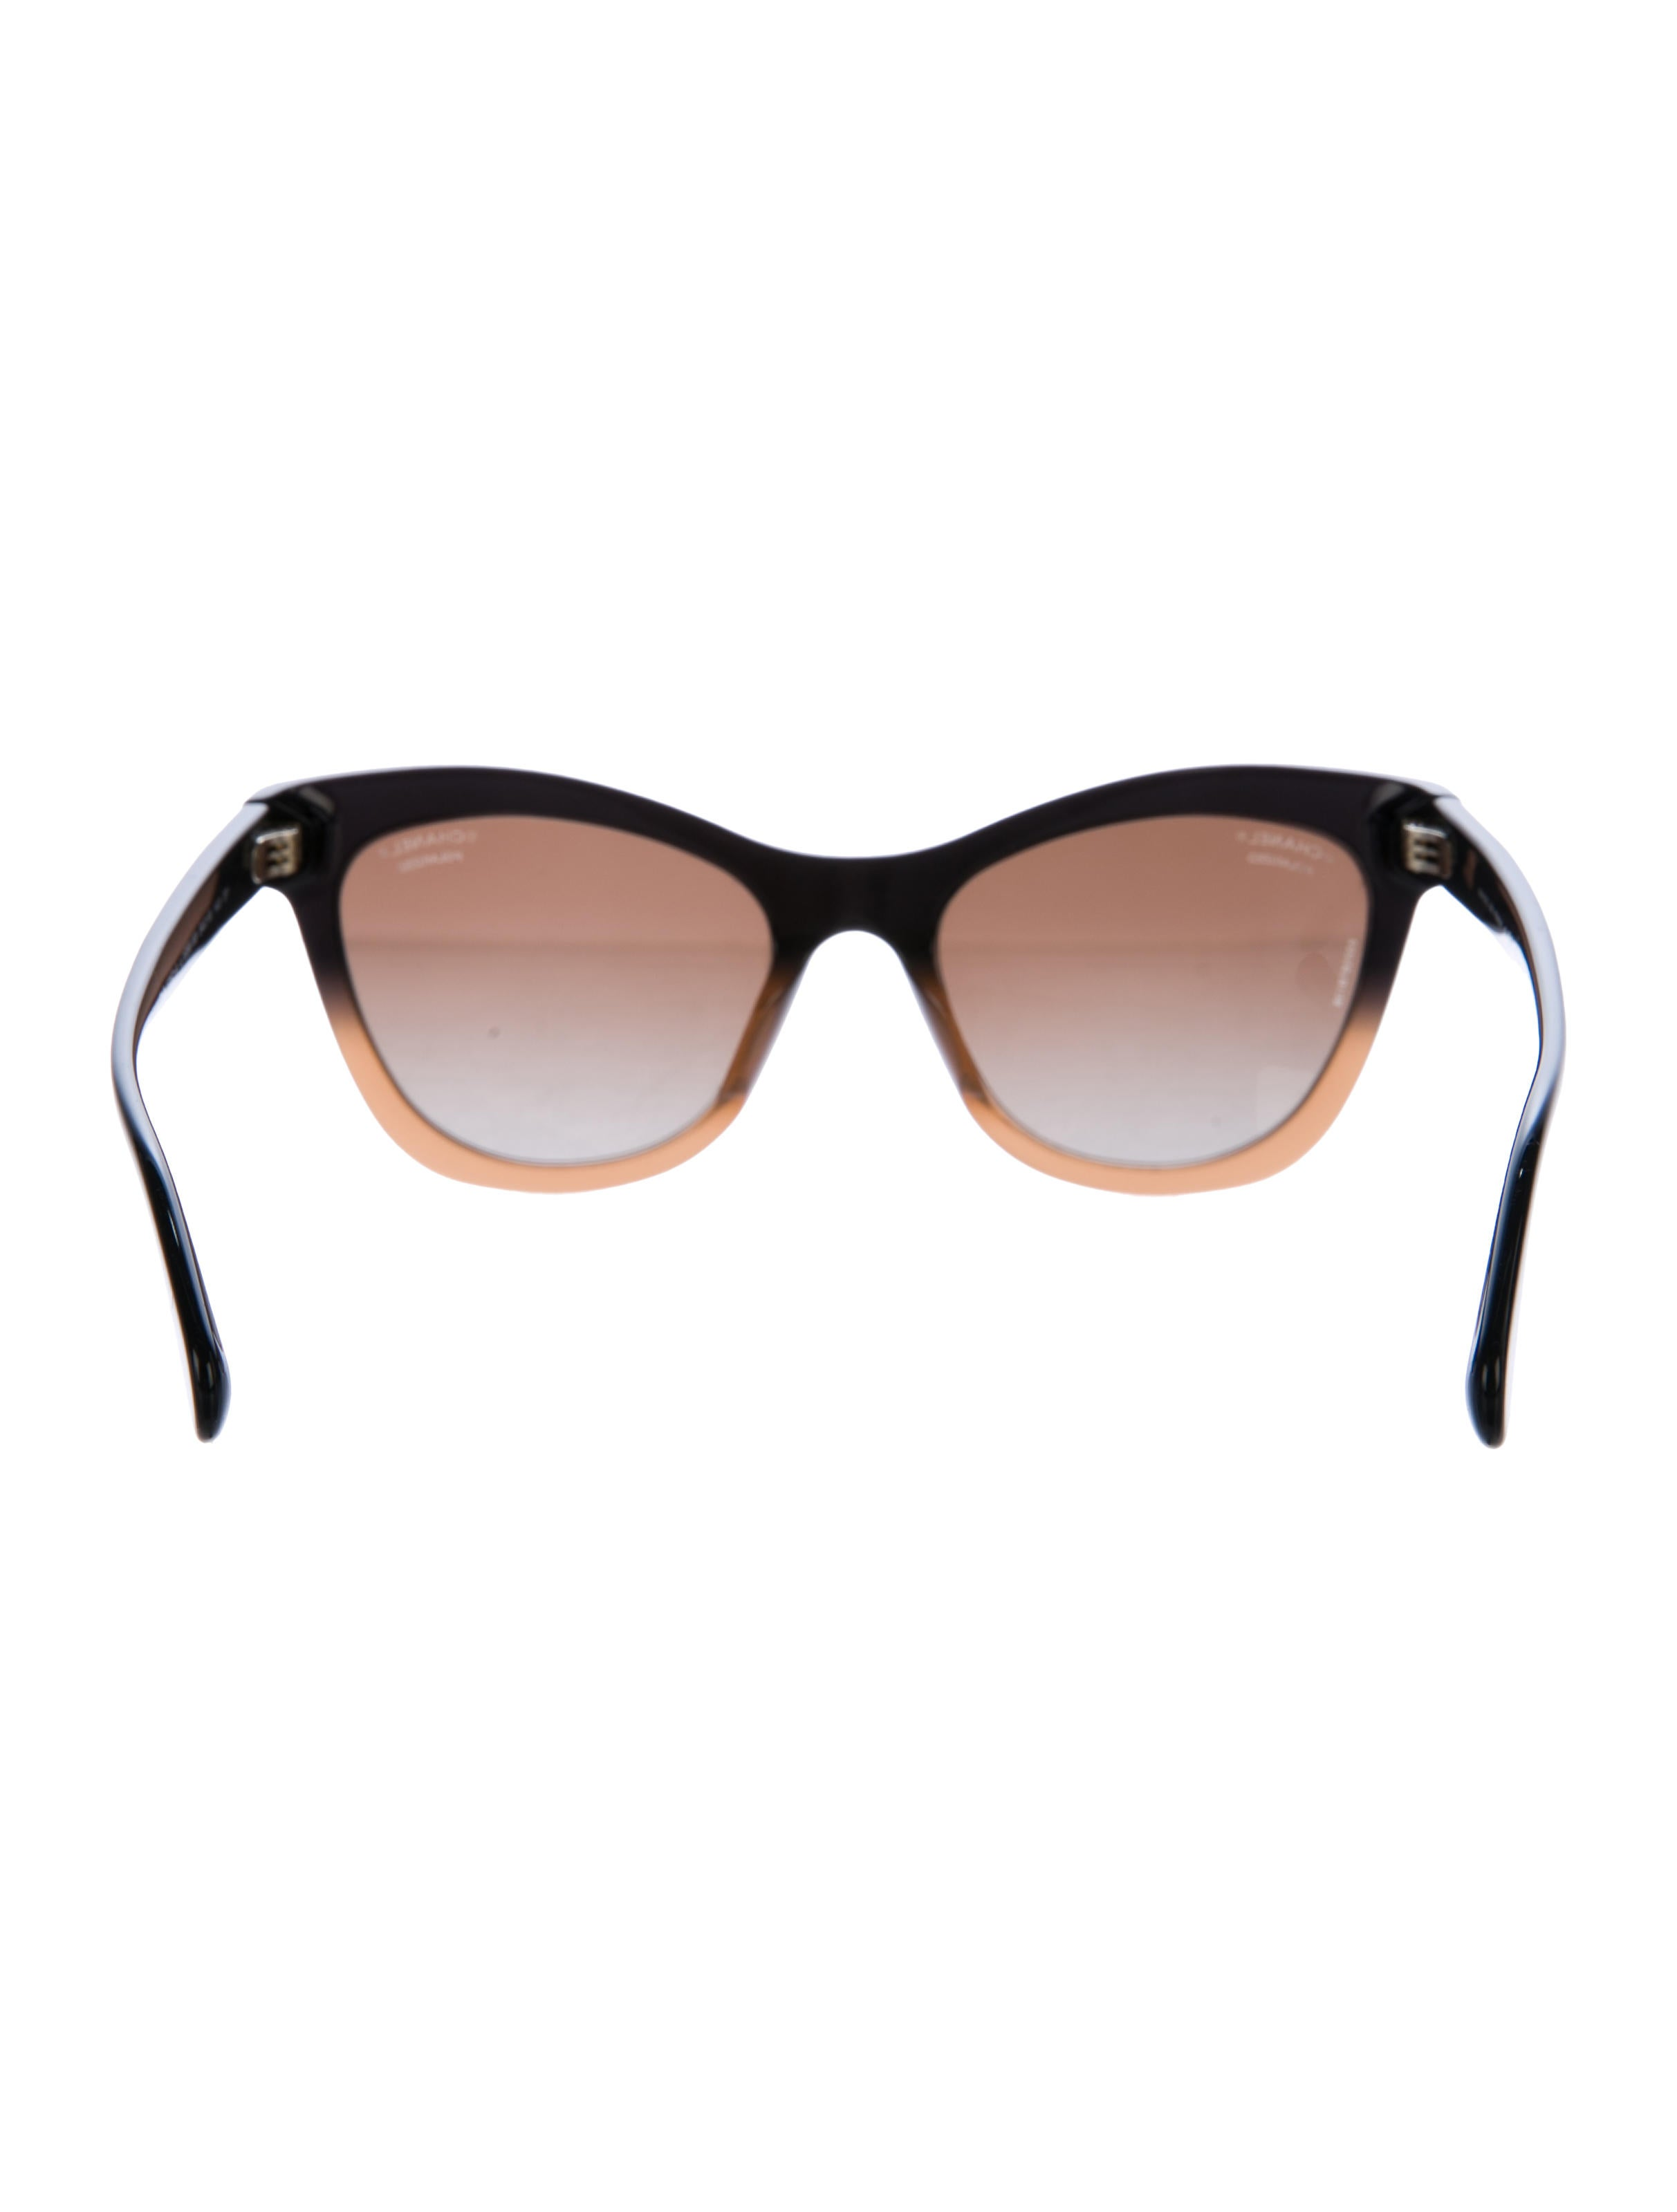 63491fe2e7 Chanel Signature Cat-Eye Sunglasses - Accessories - CHA192400